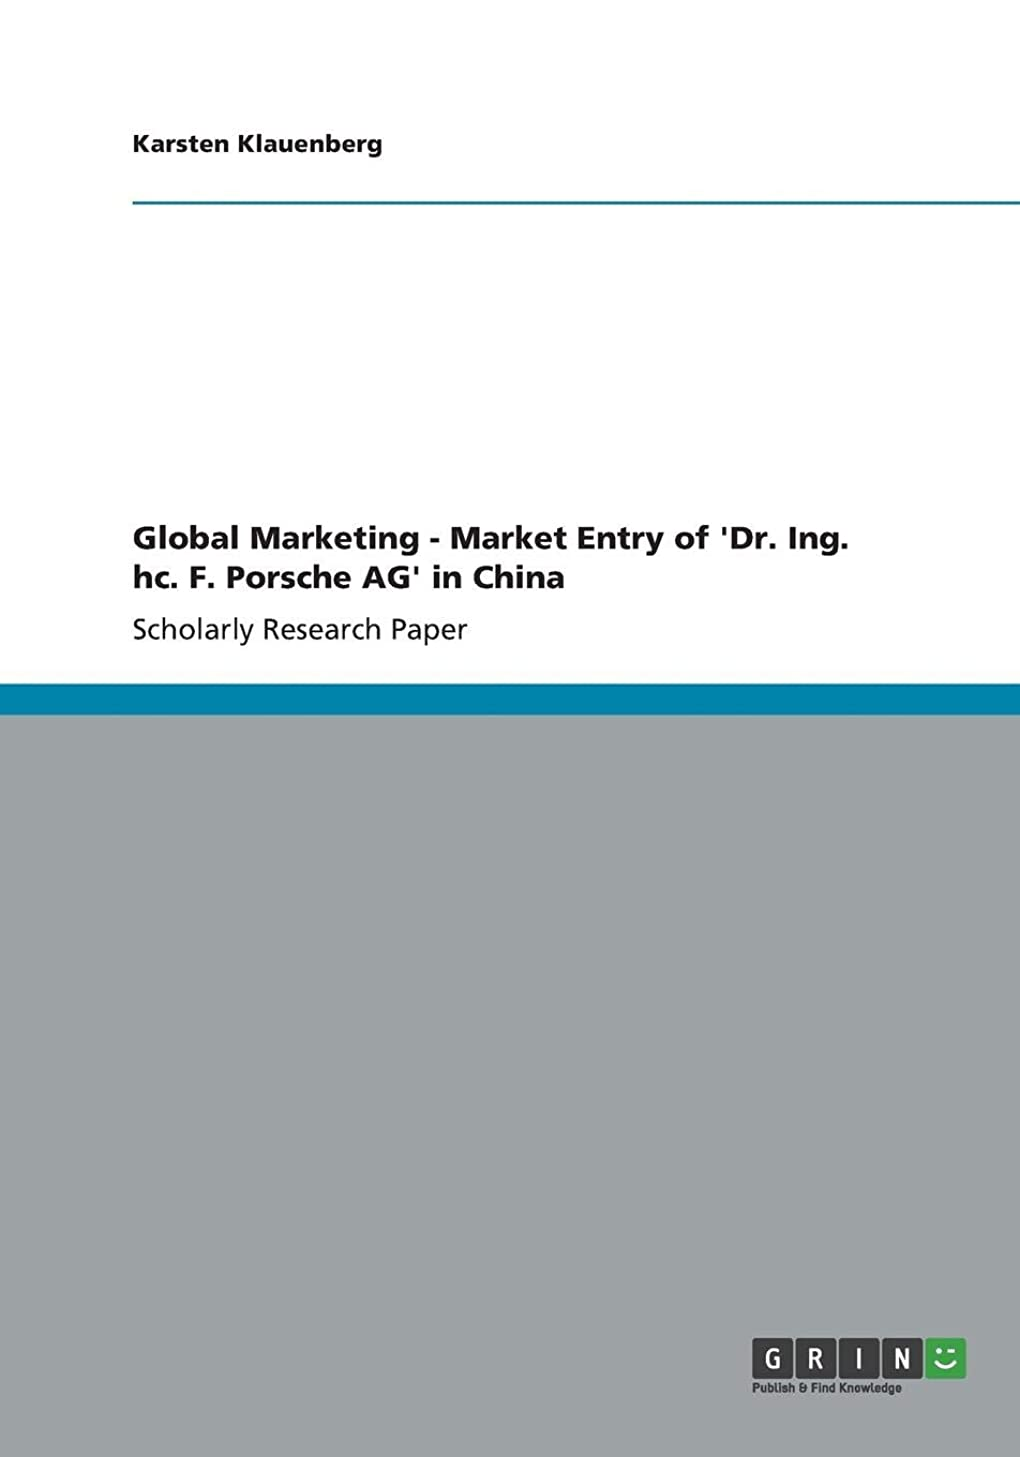 Global Marketing - Market Entry of 'Dr. Ing. hc. F. Porsche AG' in China